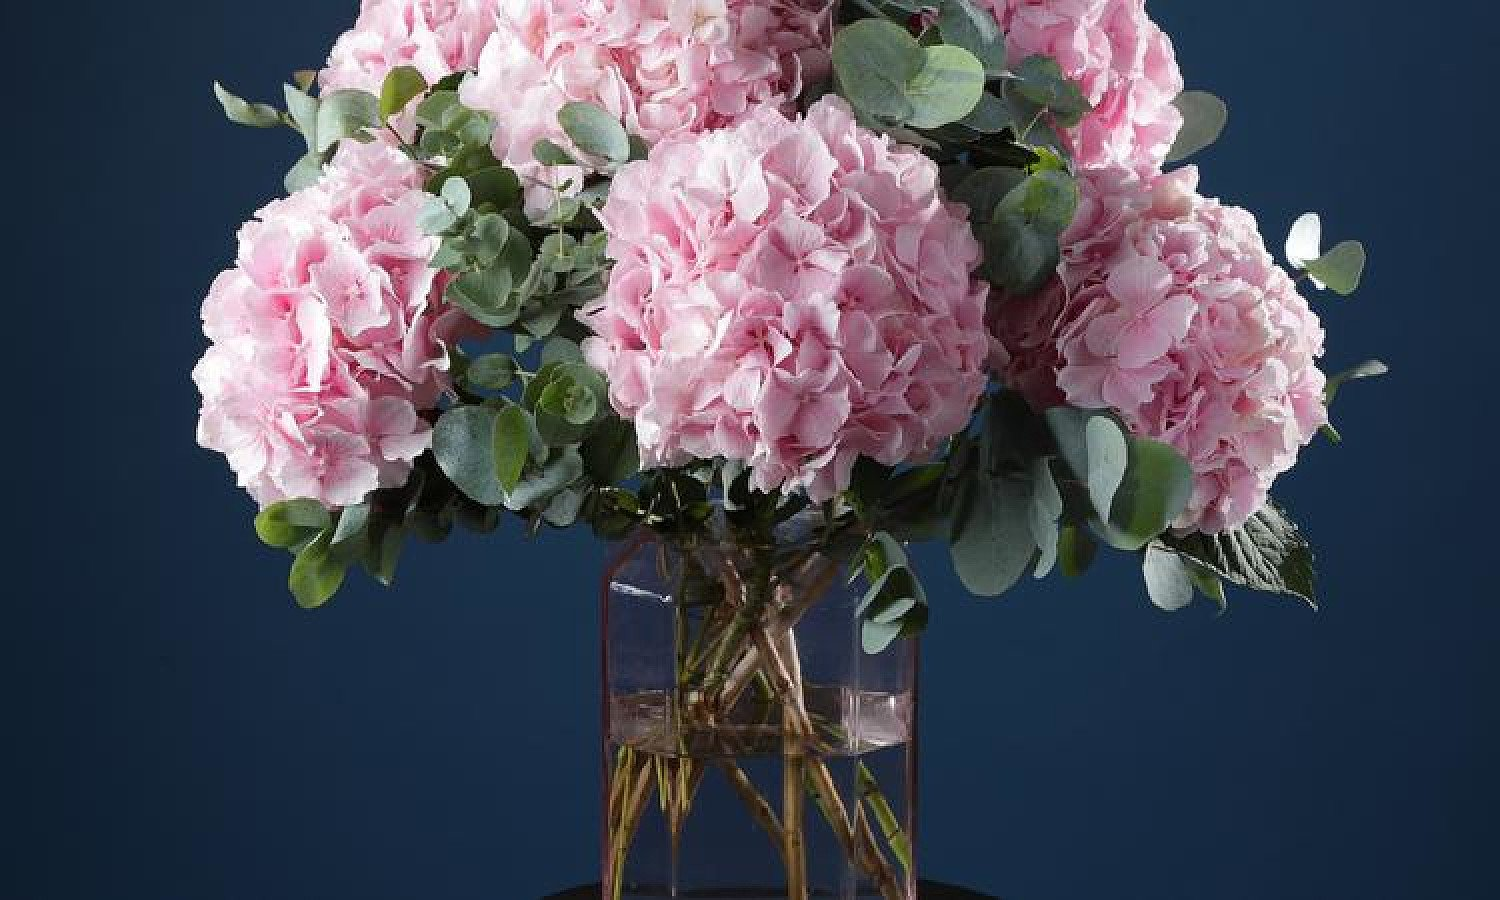 Mother's Day Gift Ideas - The gift of flowers with a 3-month floral subscription delivered weekly!